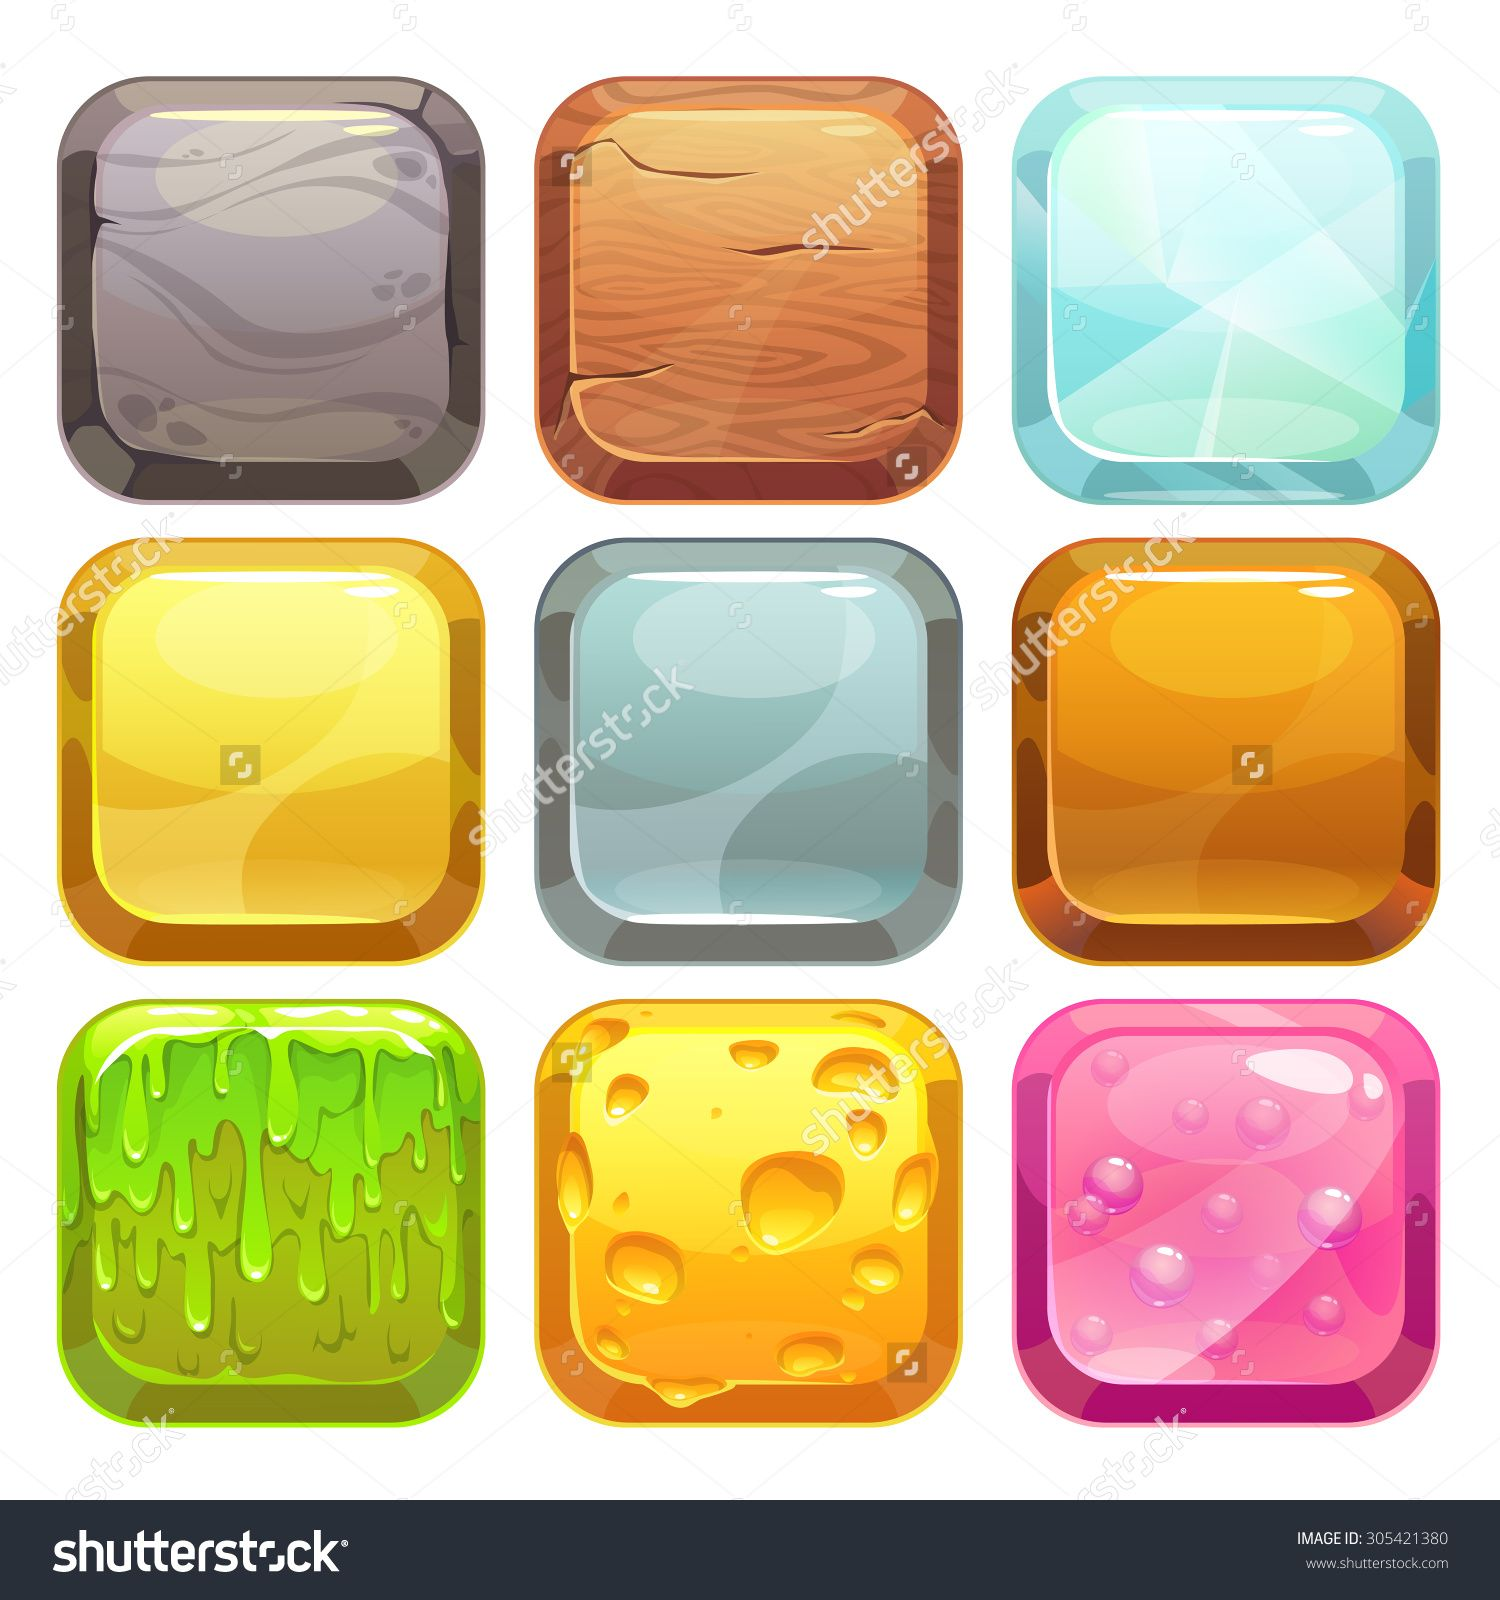 Cartoon Square Buttons Set, App Icons With Different